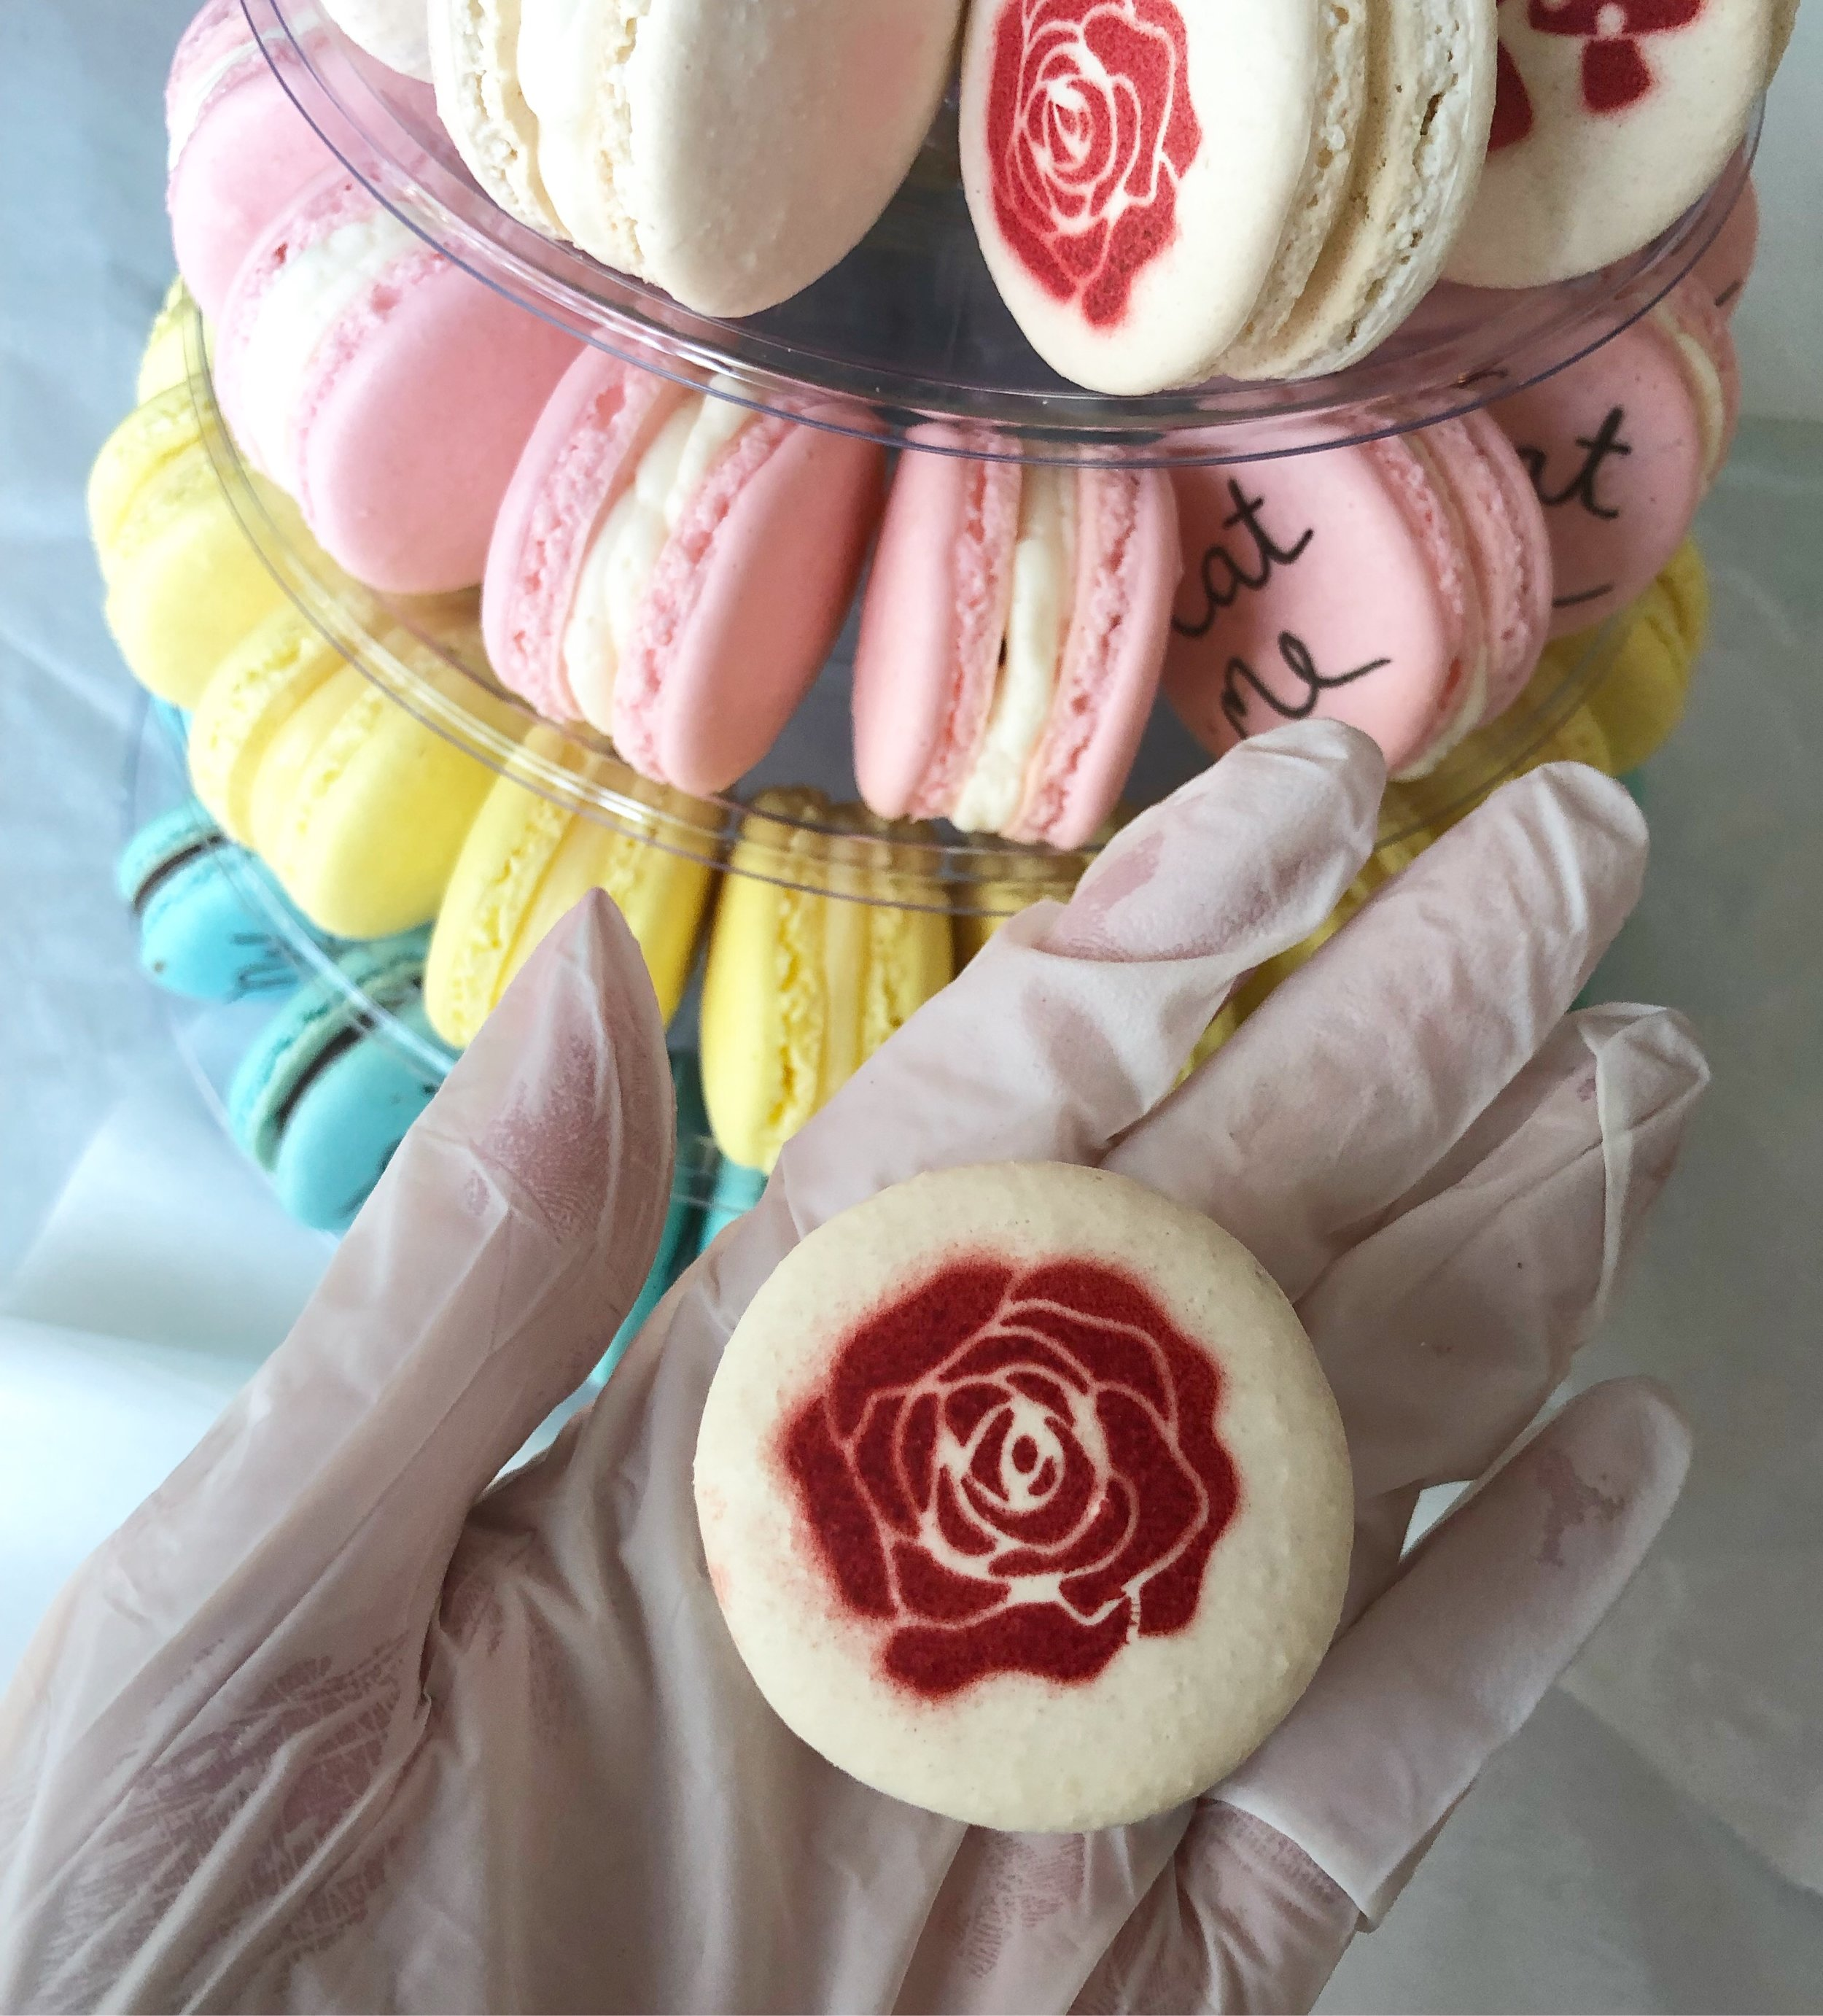 Macarons can be custom airbrushed or hand painted (or both) for custom designs, monograms, meaningful symbols, and more